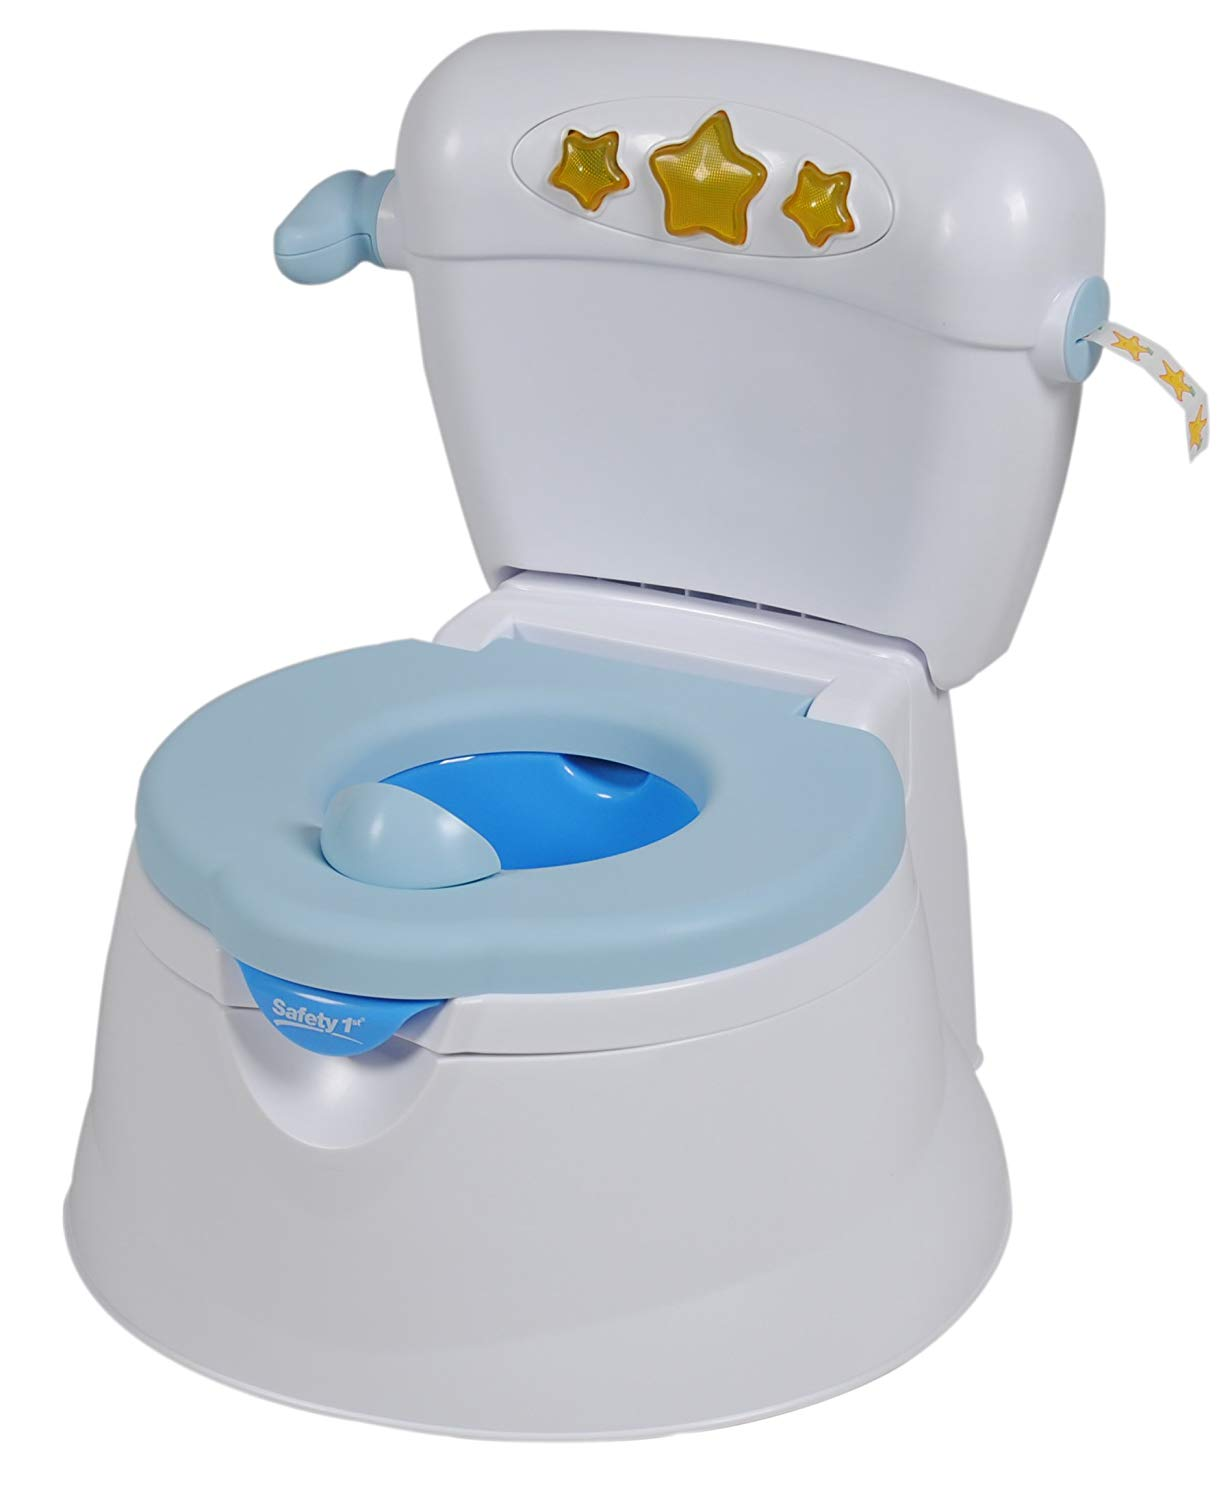 Safety 1st Smart Rewards Potty with Sounds